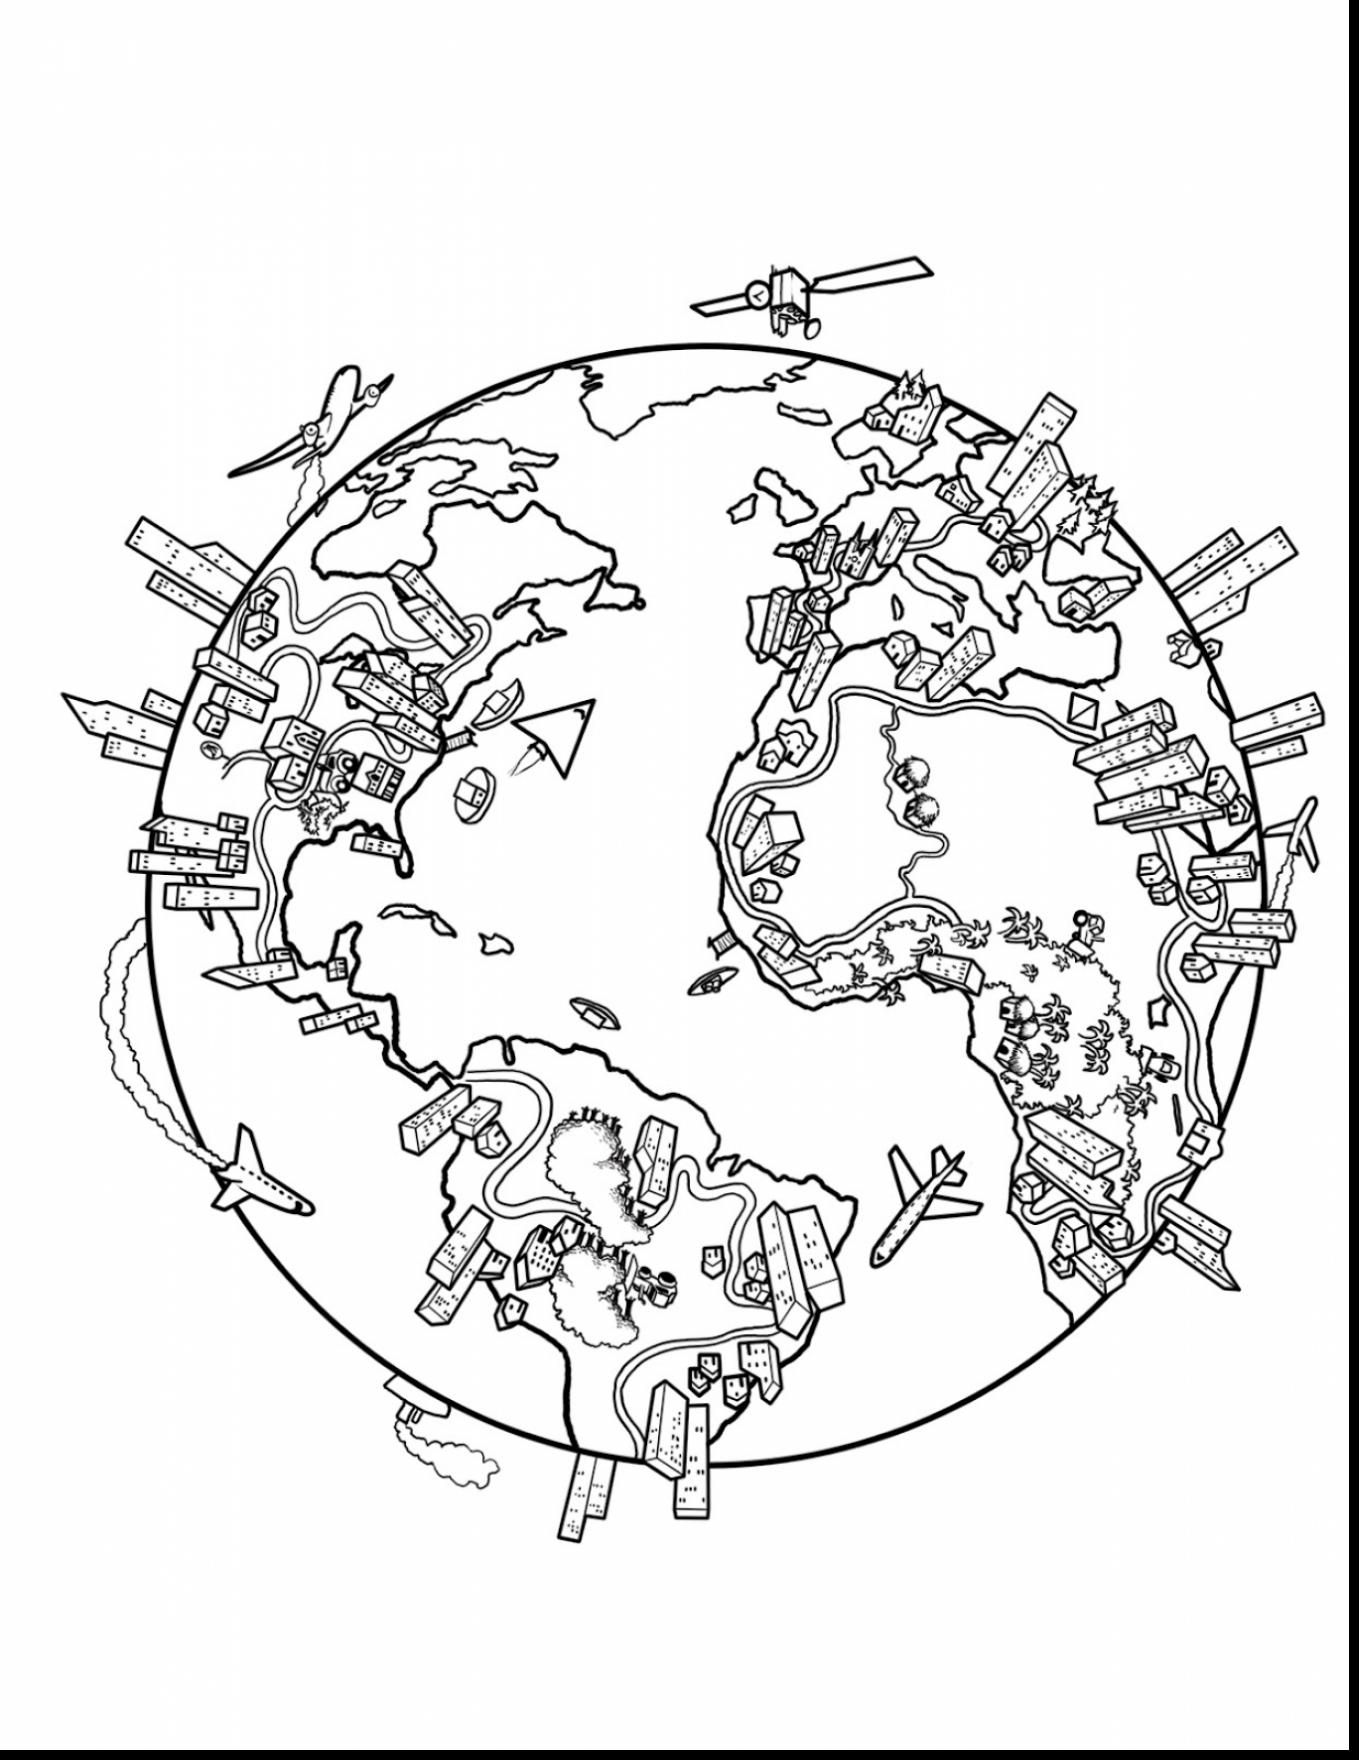 United States Of America Coloring Page At Getdrawings Com Free For